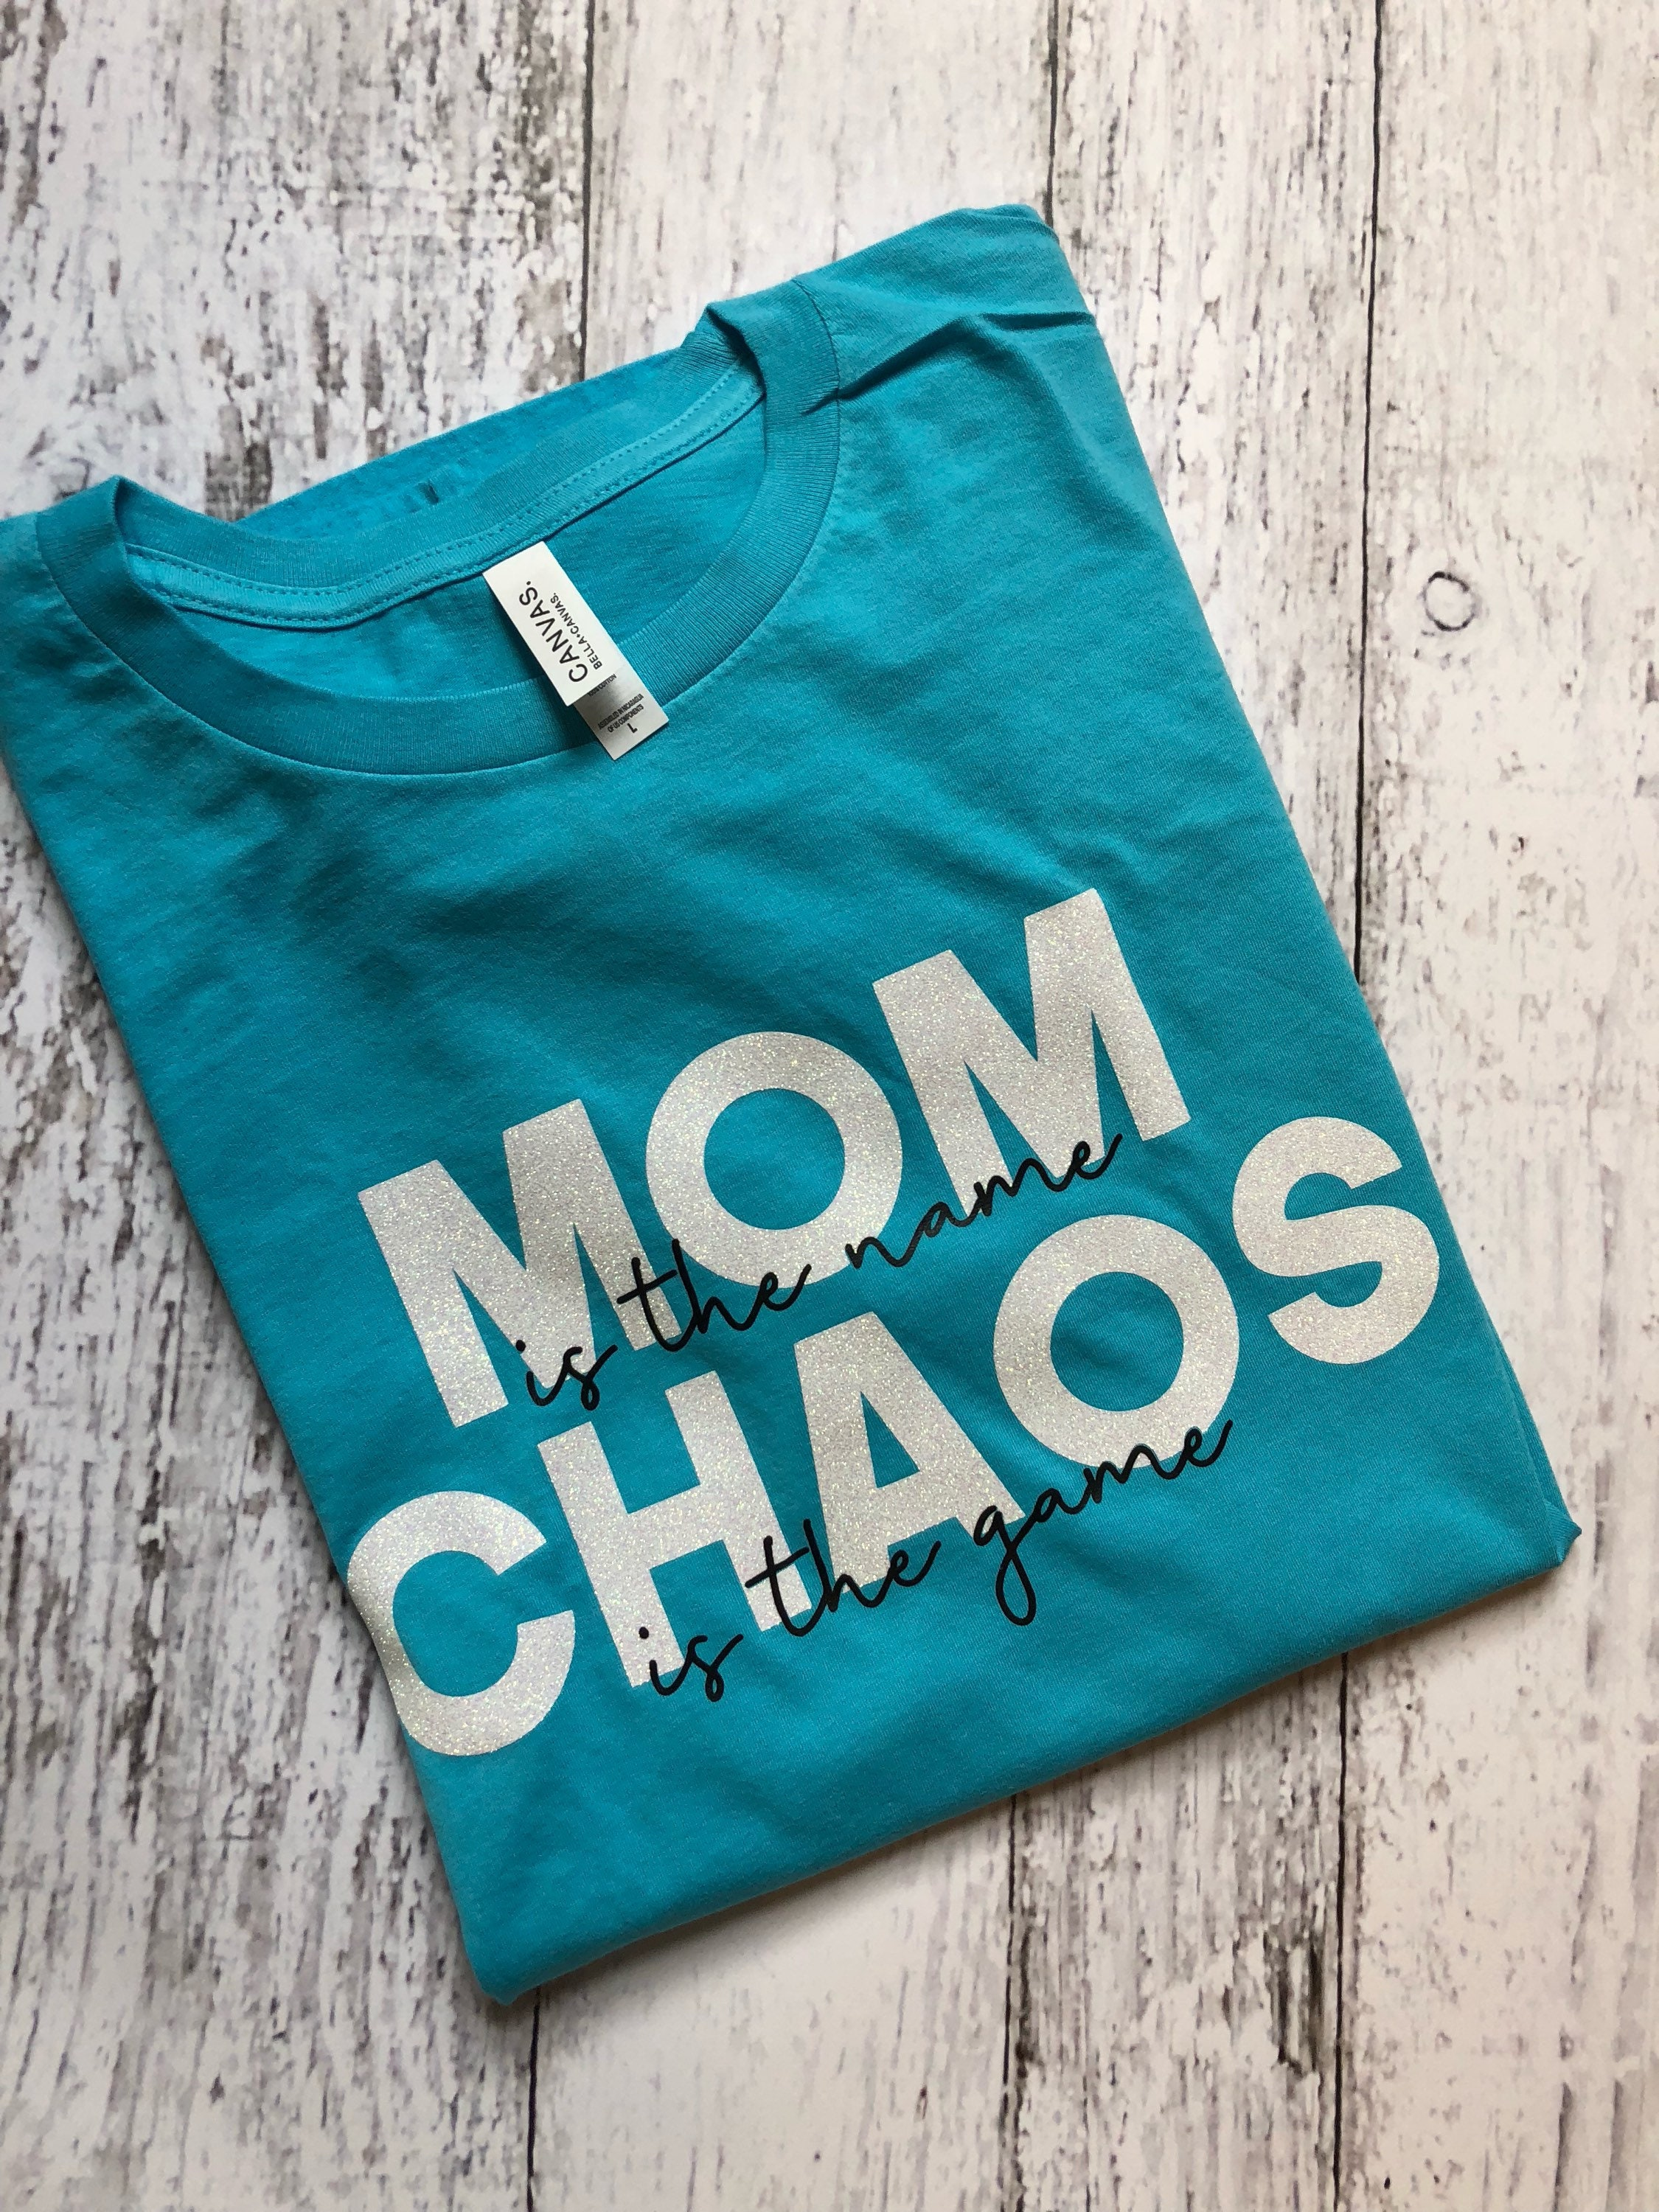 Mom Is The Name, Chaos Is The Game T-Shirt / Funny Mom Shirts / Funny Mom  T-Shirts / Funny Shirts / Motherhood Shirts / Gifts For Mom / Tee